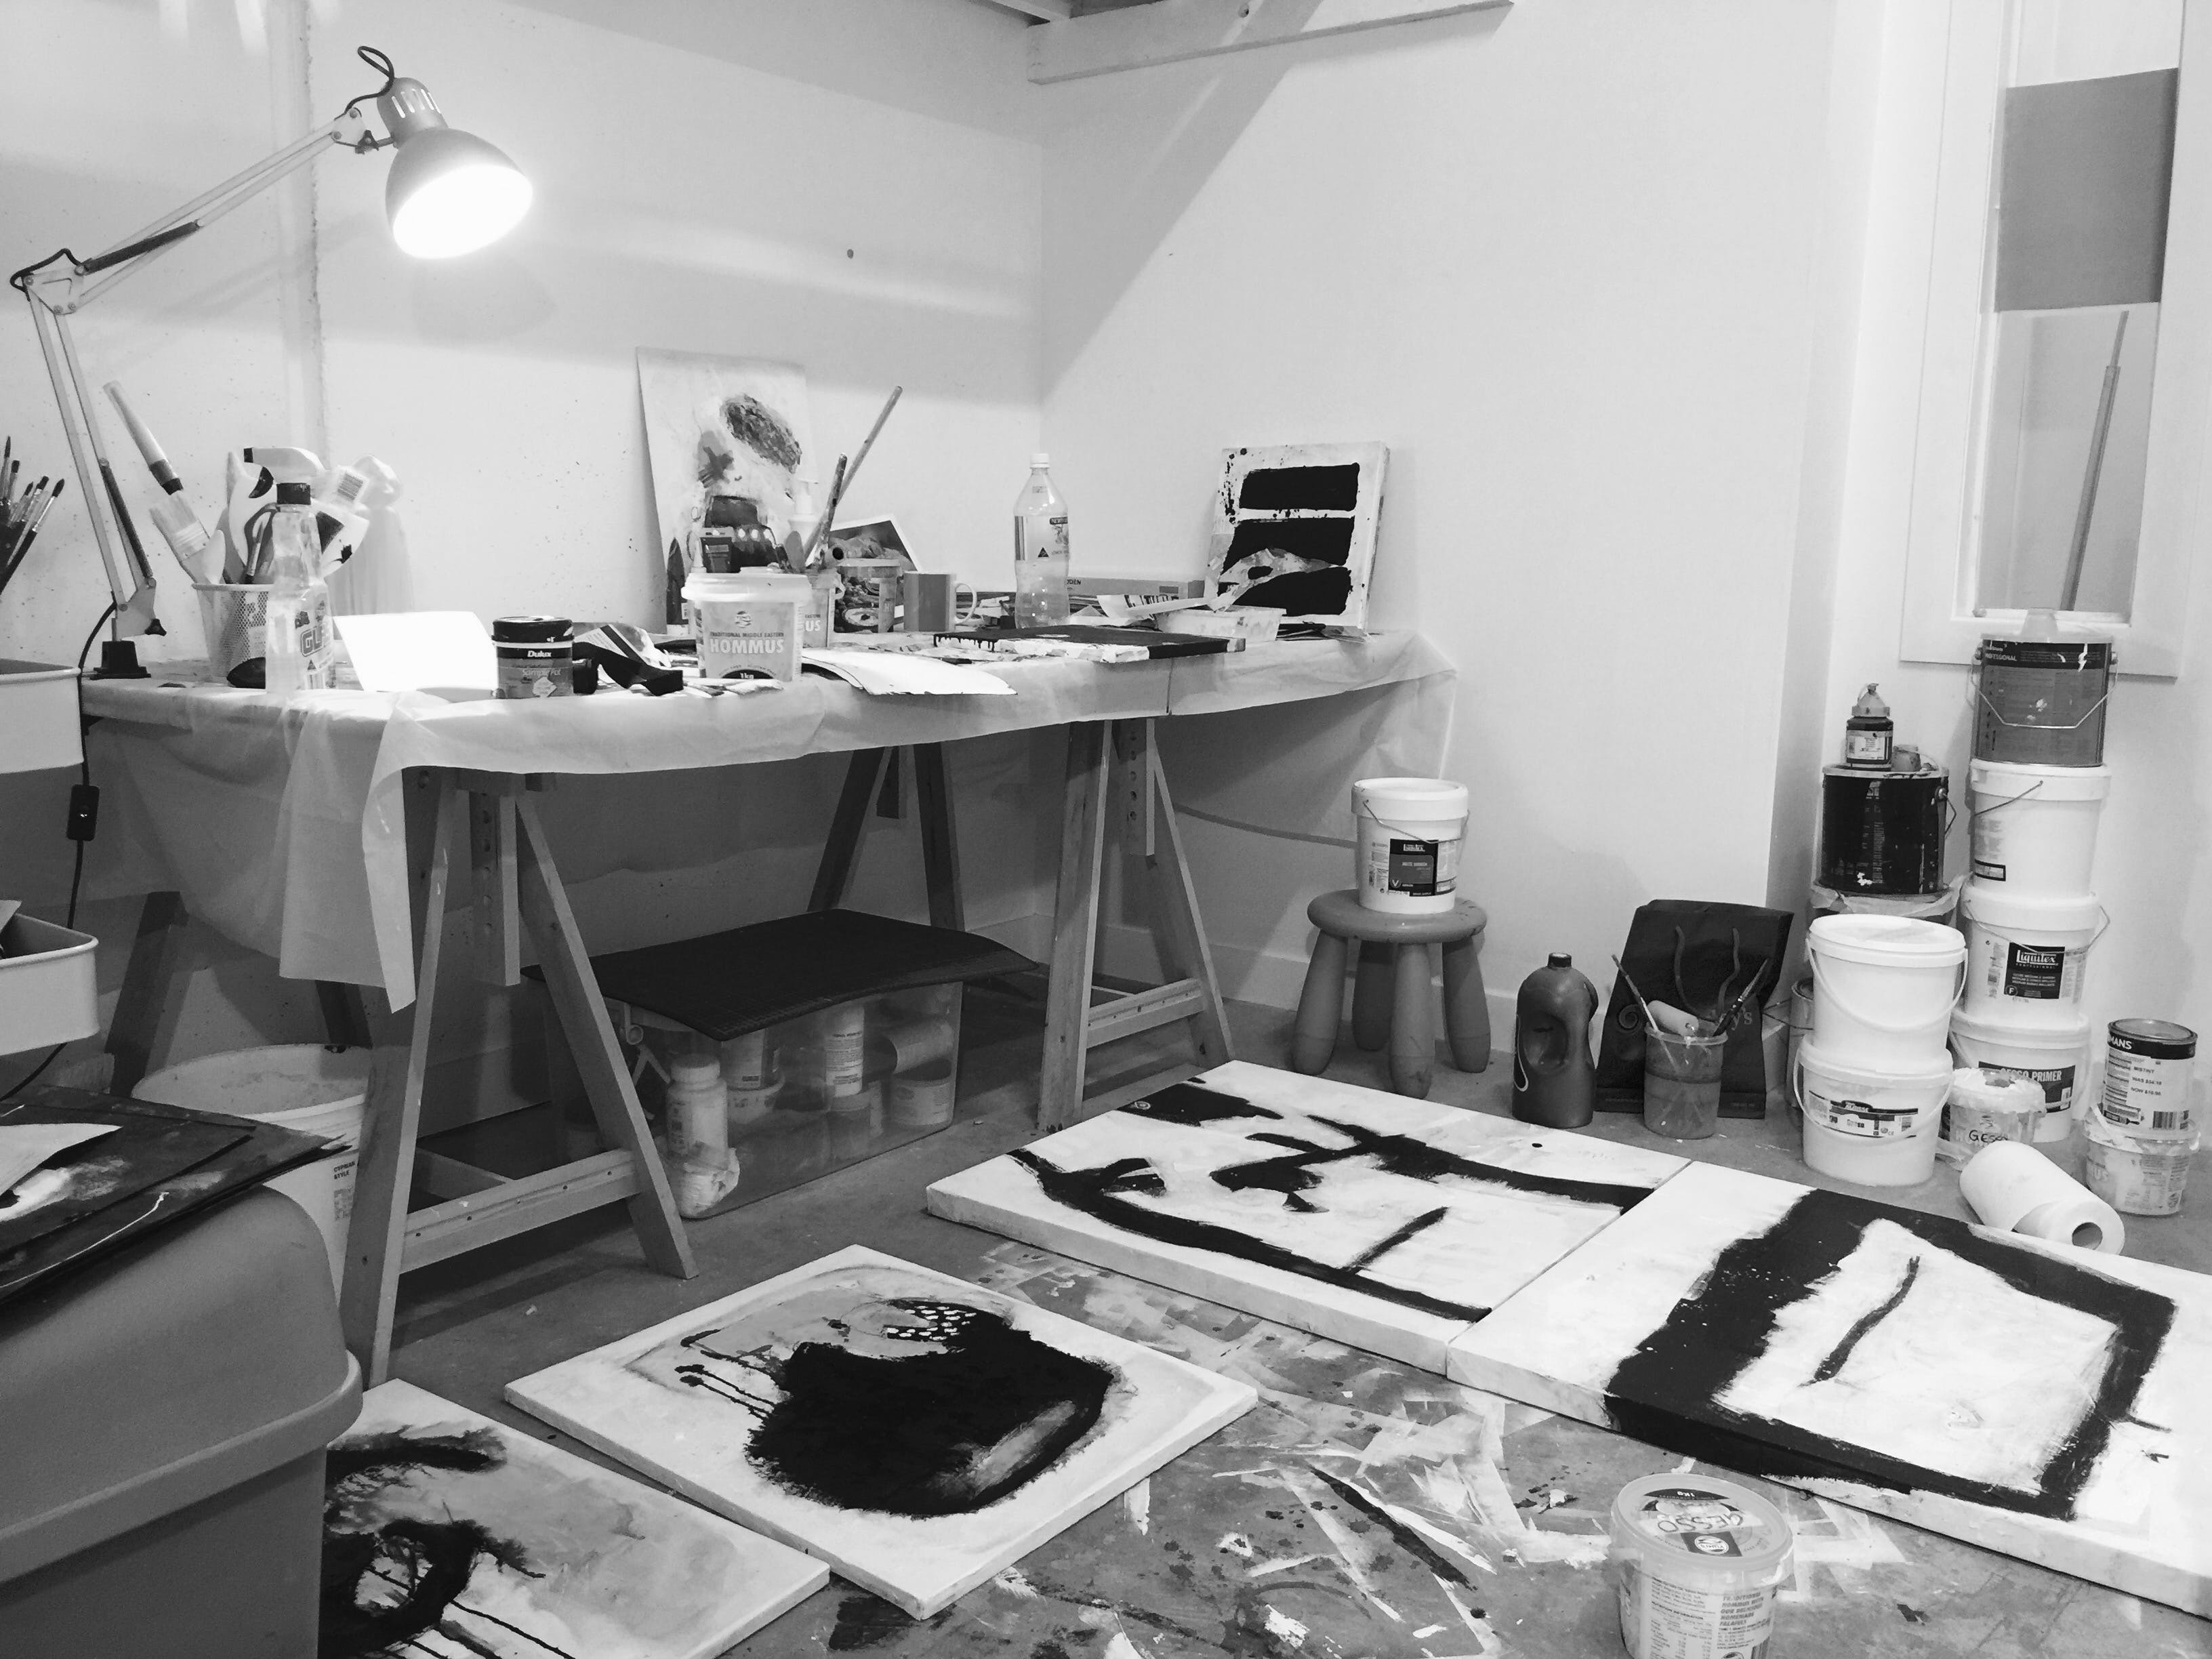 Art Gallery and Venue, creative studio at Laurent Contemporary Art Gallery and Cafe, image 1